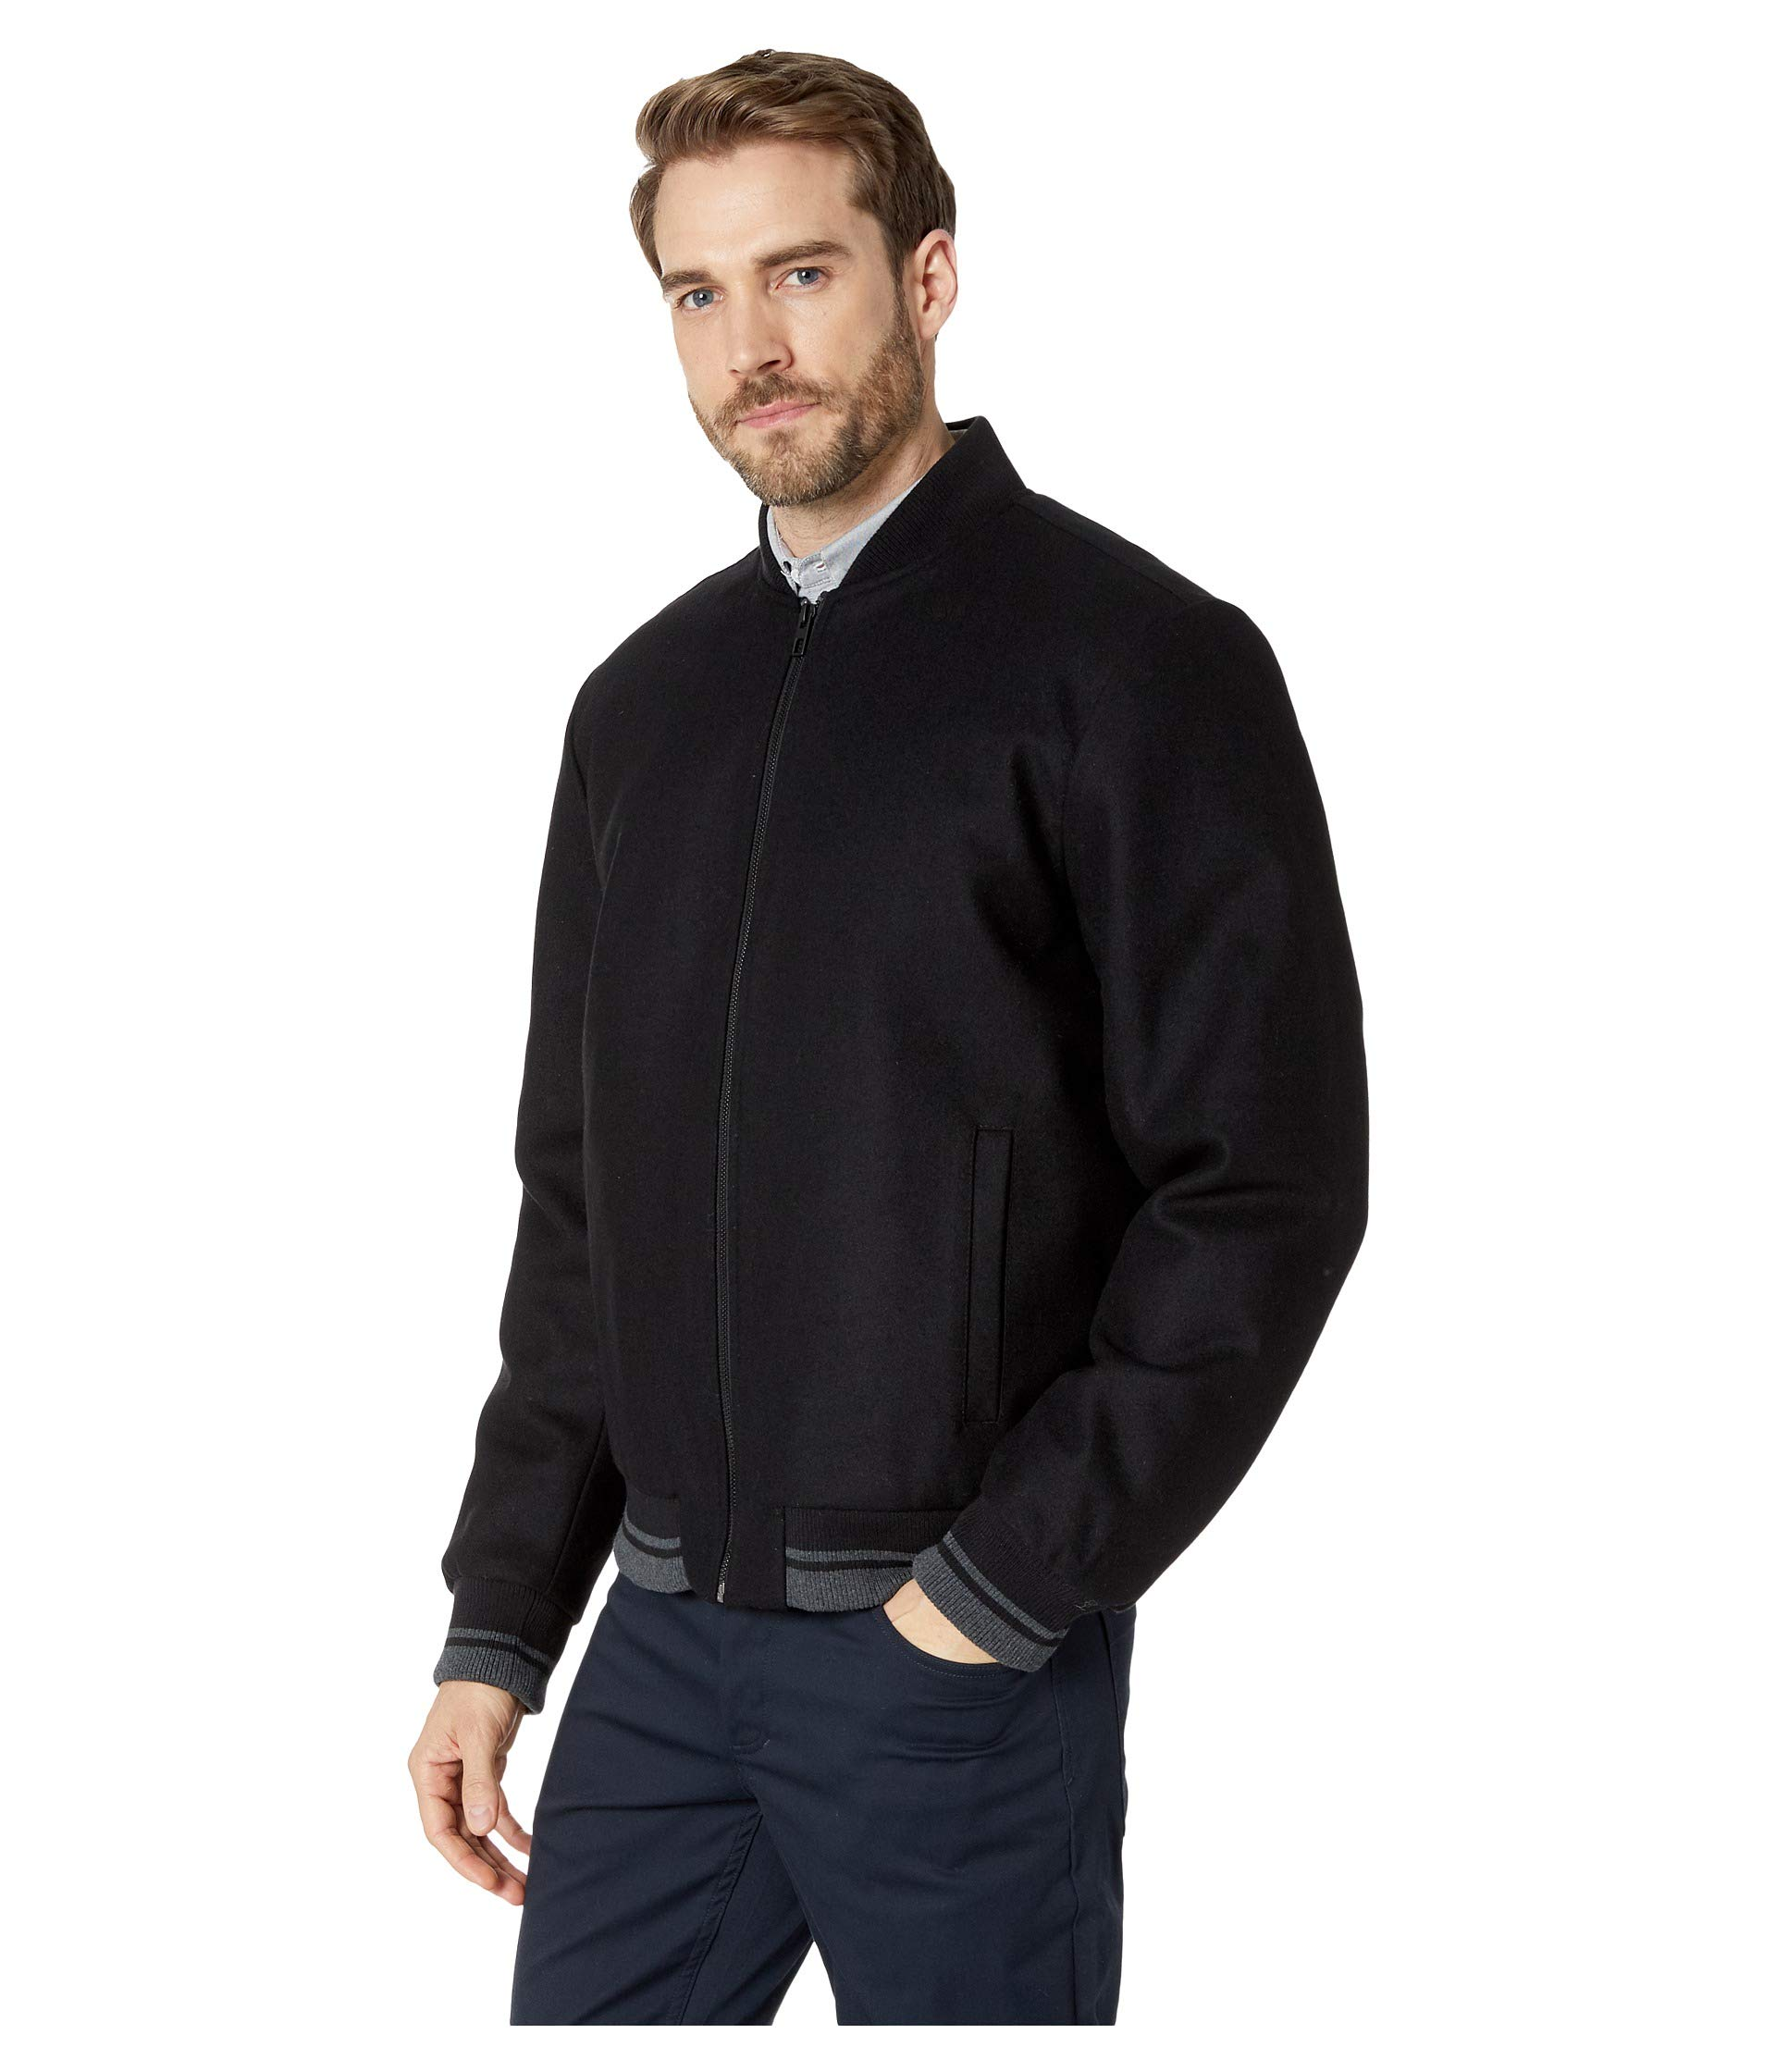 With Calvin Jacket Contrast Wool Klein Black Bomber Rib Tipping nFFxv1UwA